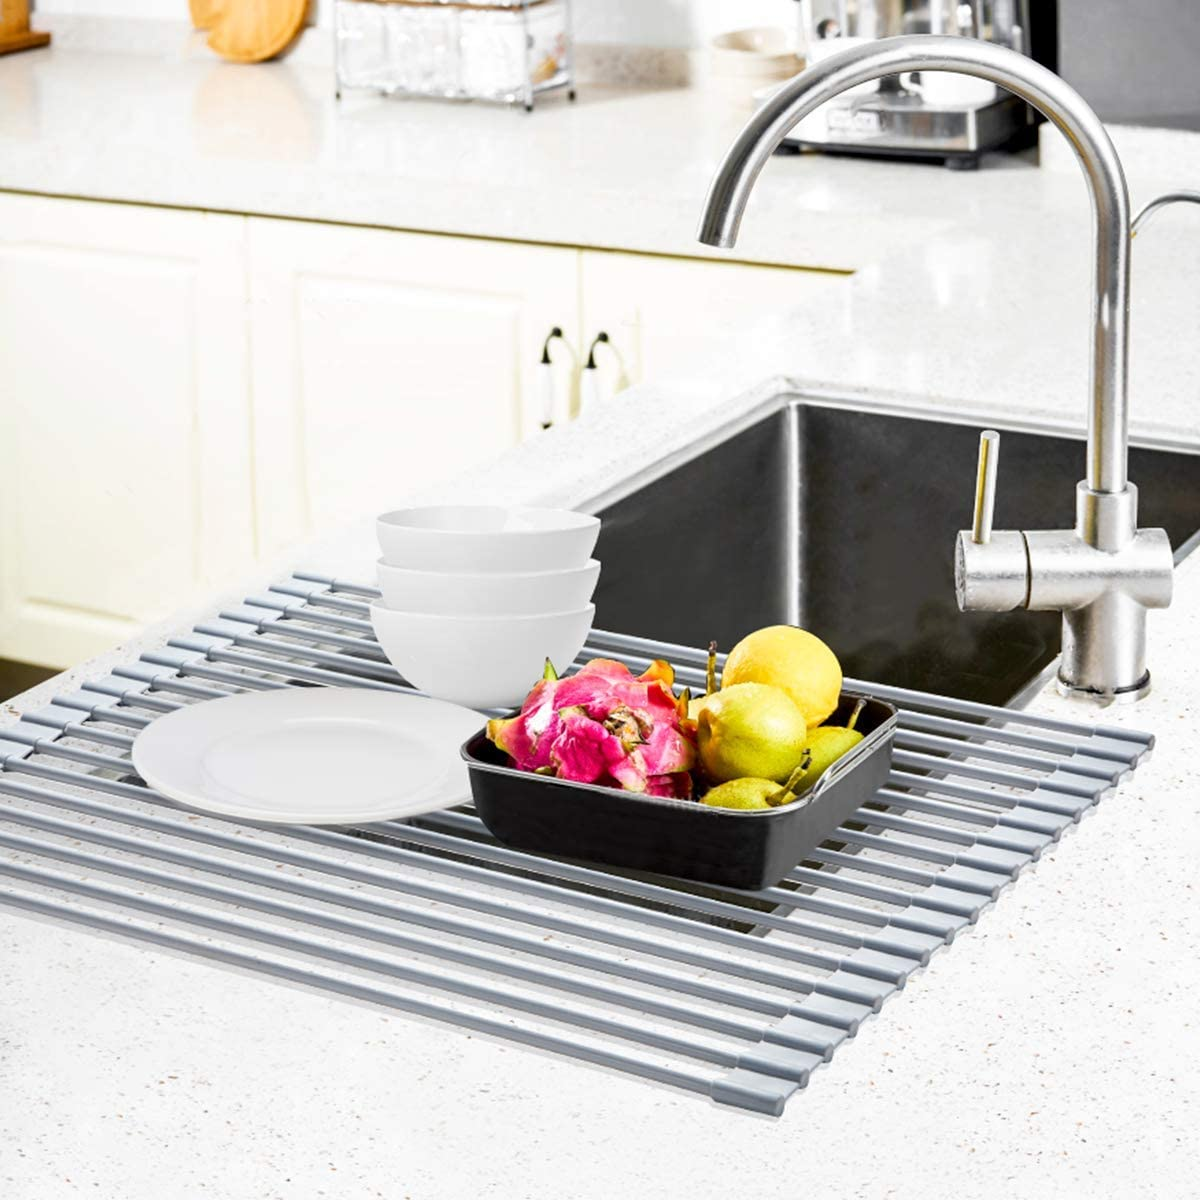 Review of Roll Up Dish Drying Rack, Ohuhu Large Dish Drying Rack, 17.6